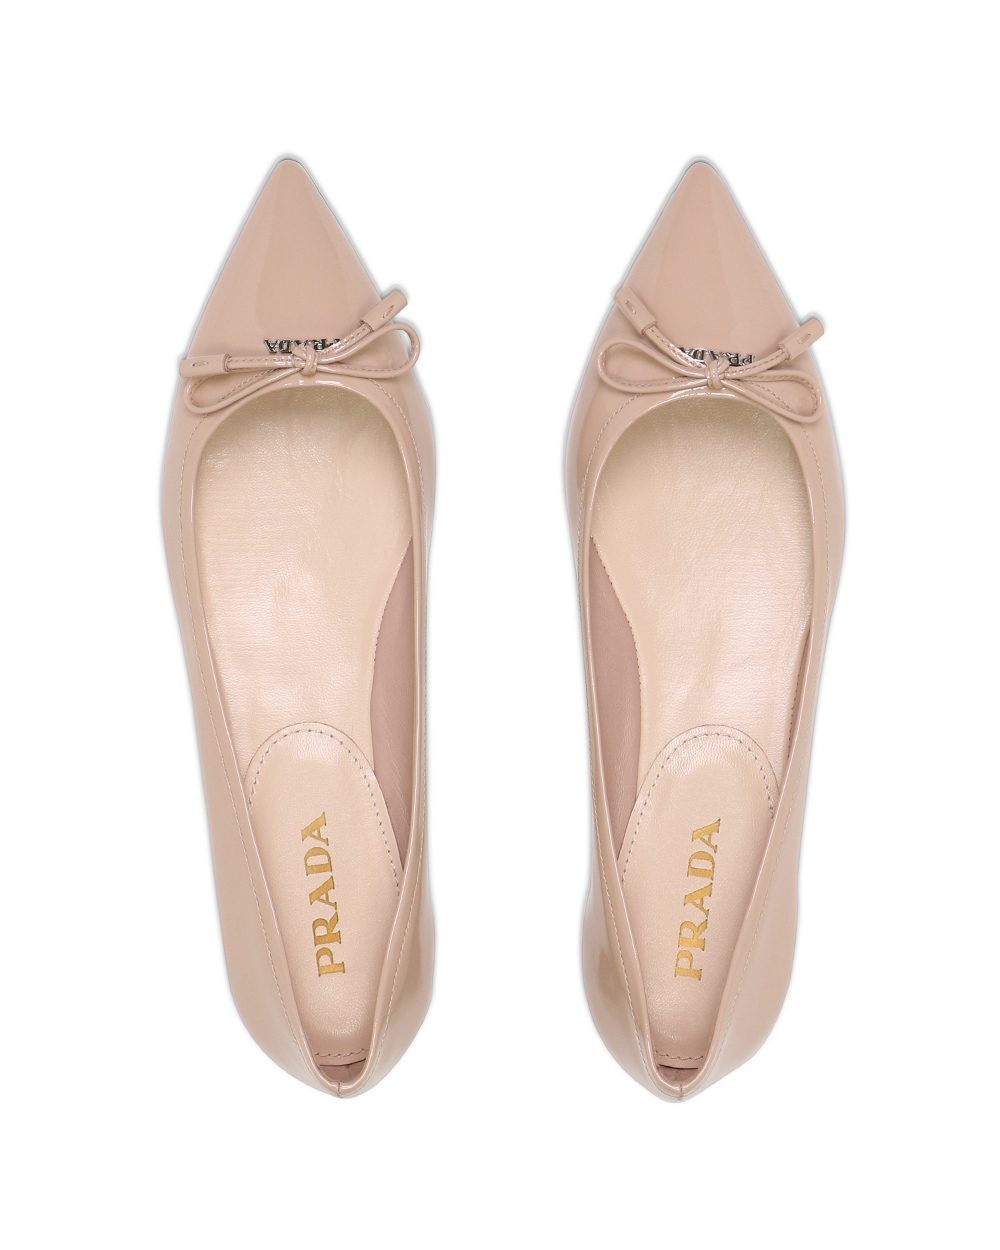 Leather Bow Flat Shoes 3